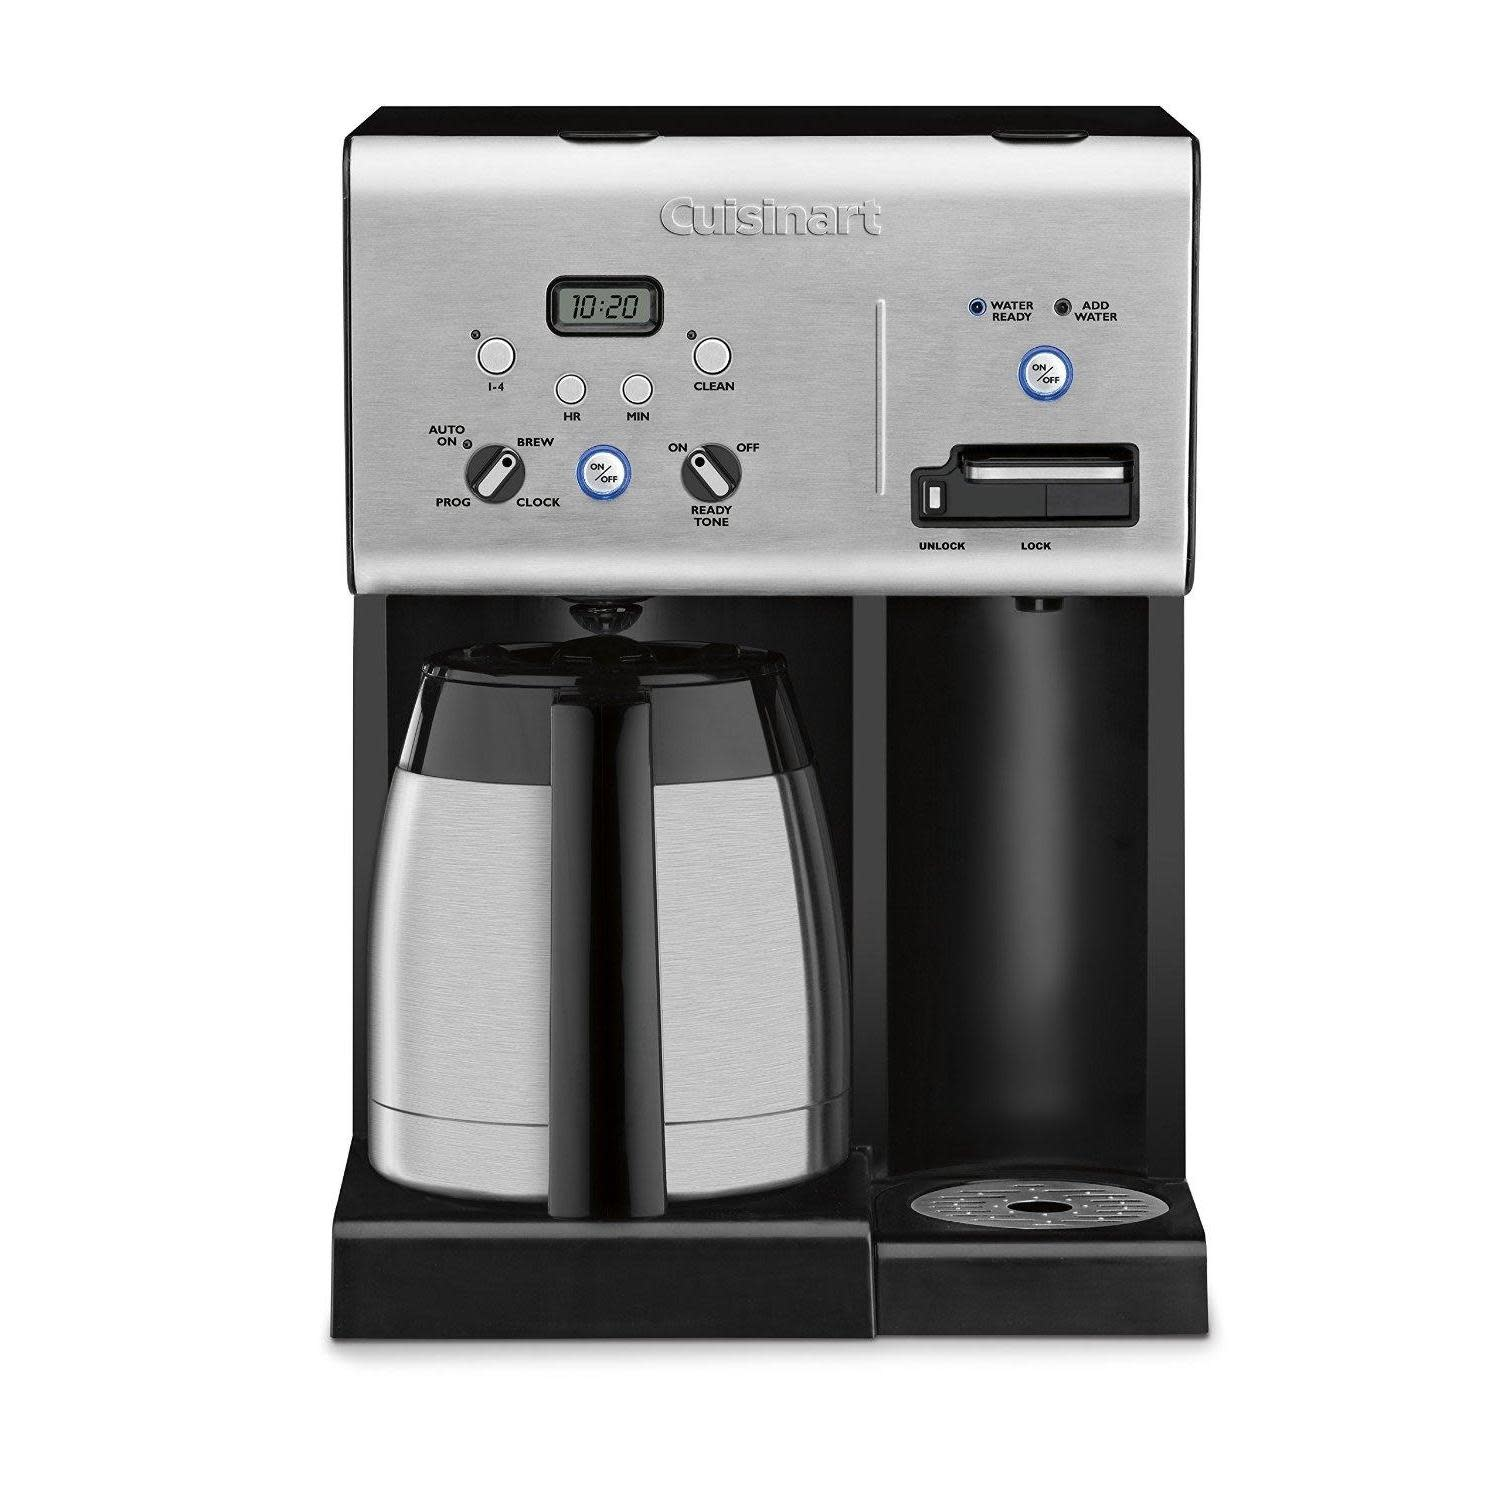 Cuisinart Electric Coffee Maker With Hot Water on demand Carafe-thermal 10cup -56oz H2o reservoir